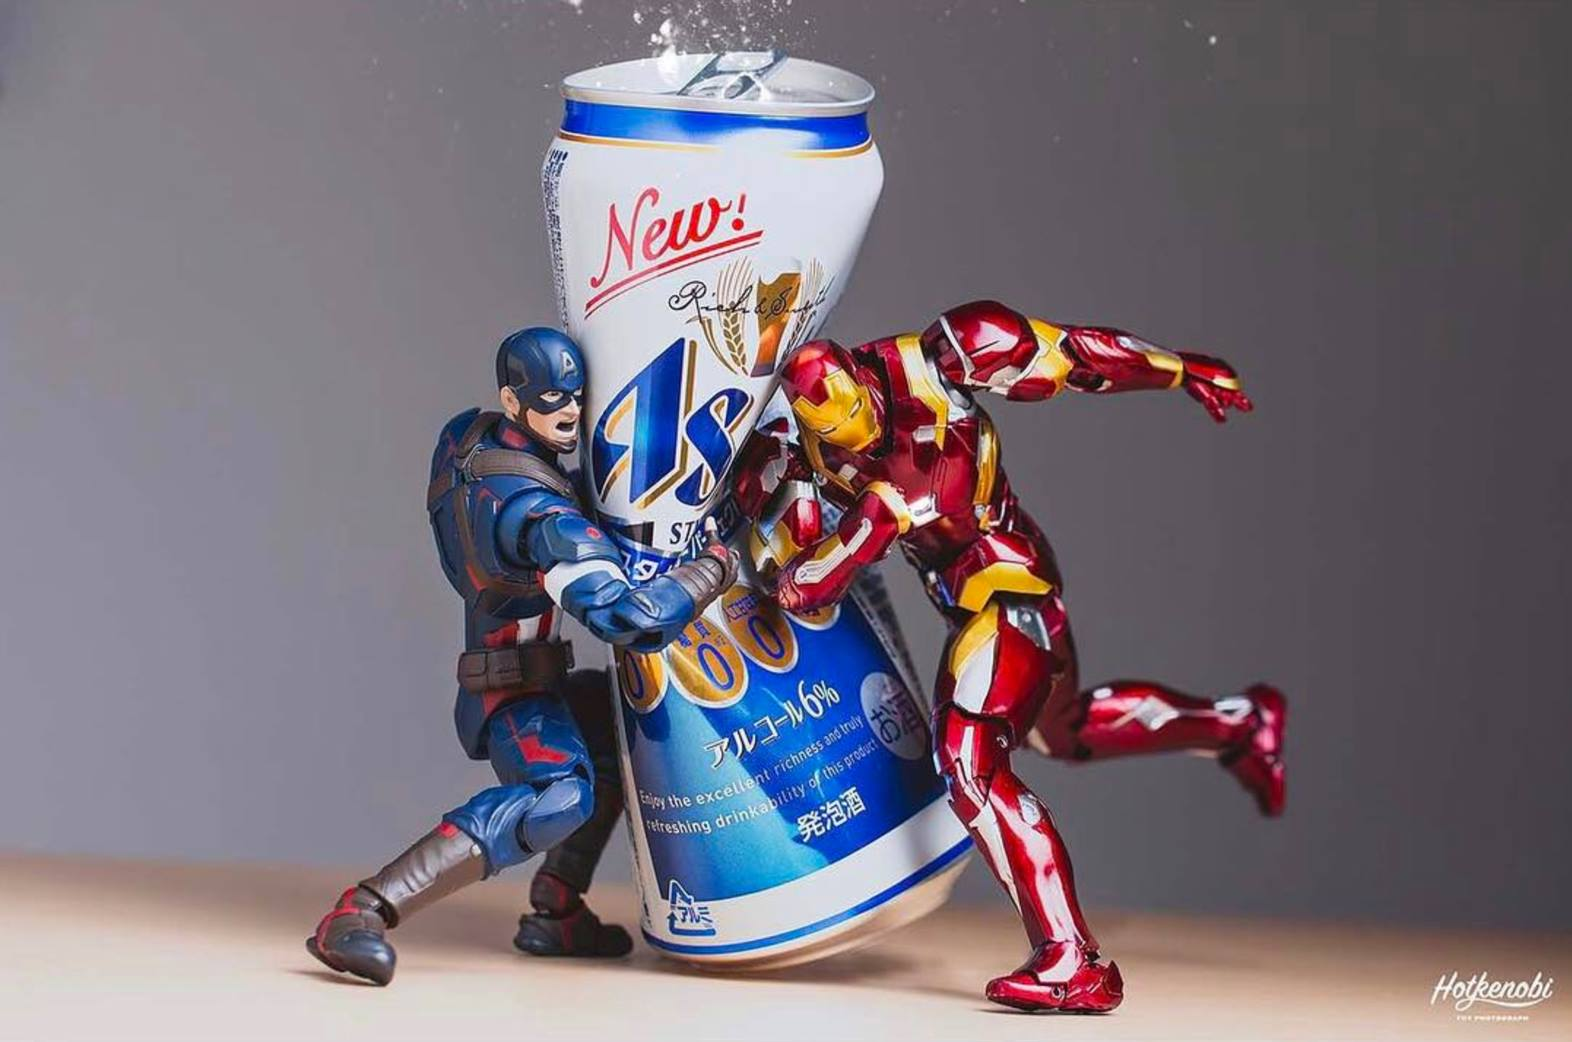 hot-kenobi-action-figures-beer-cans-photographs-04